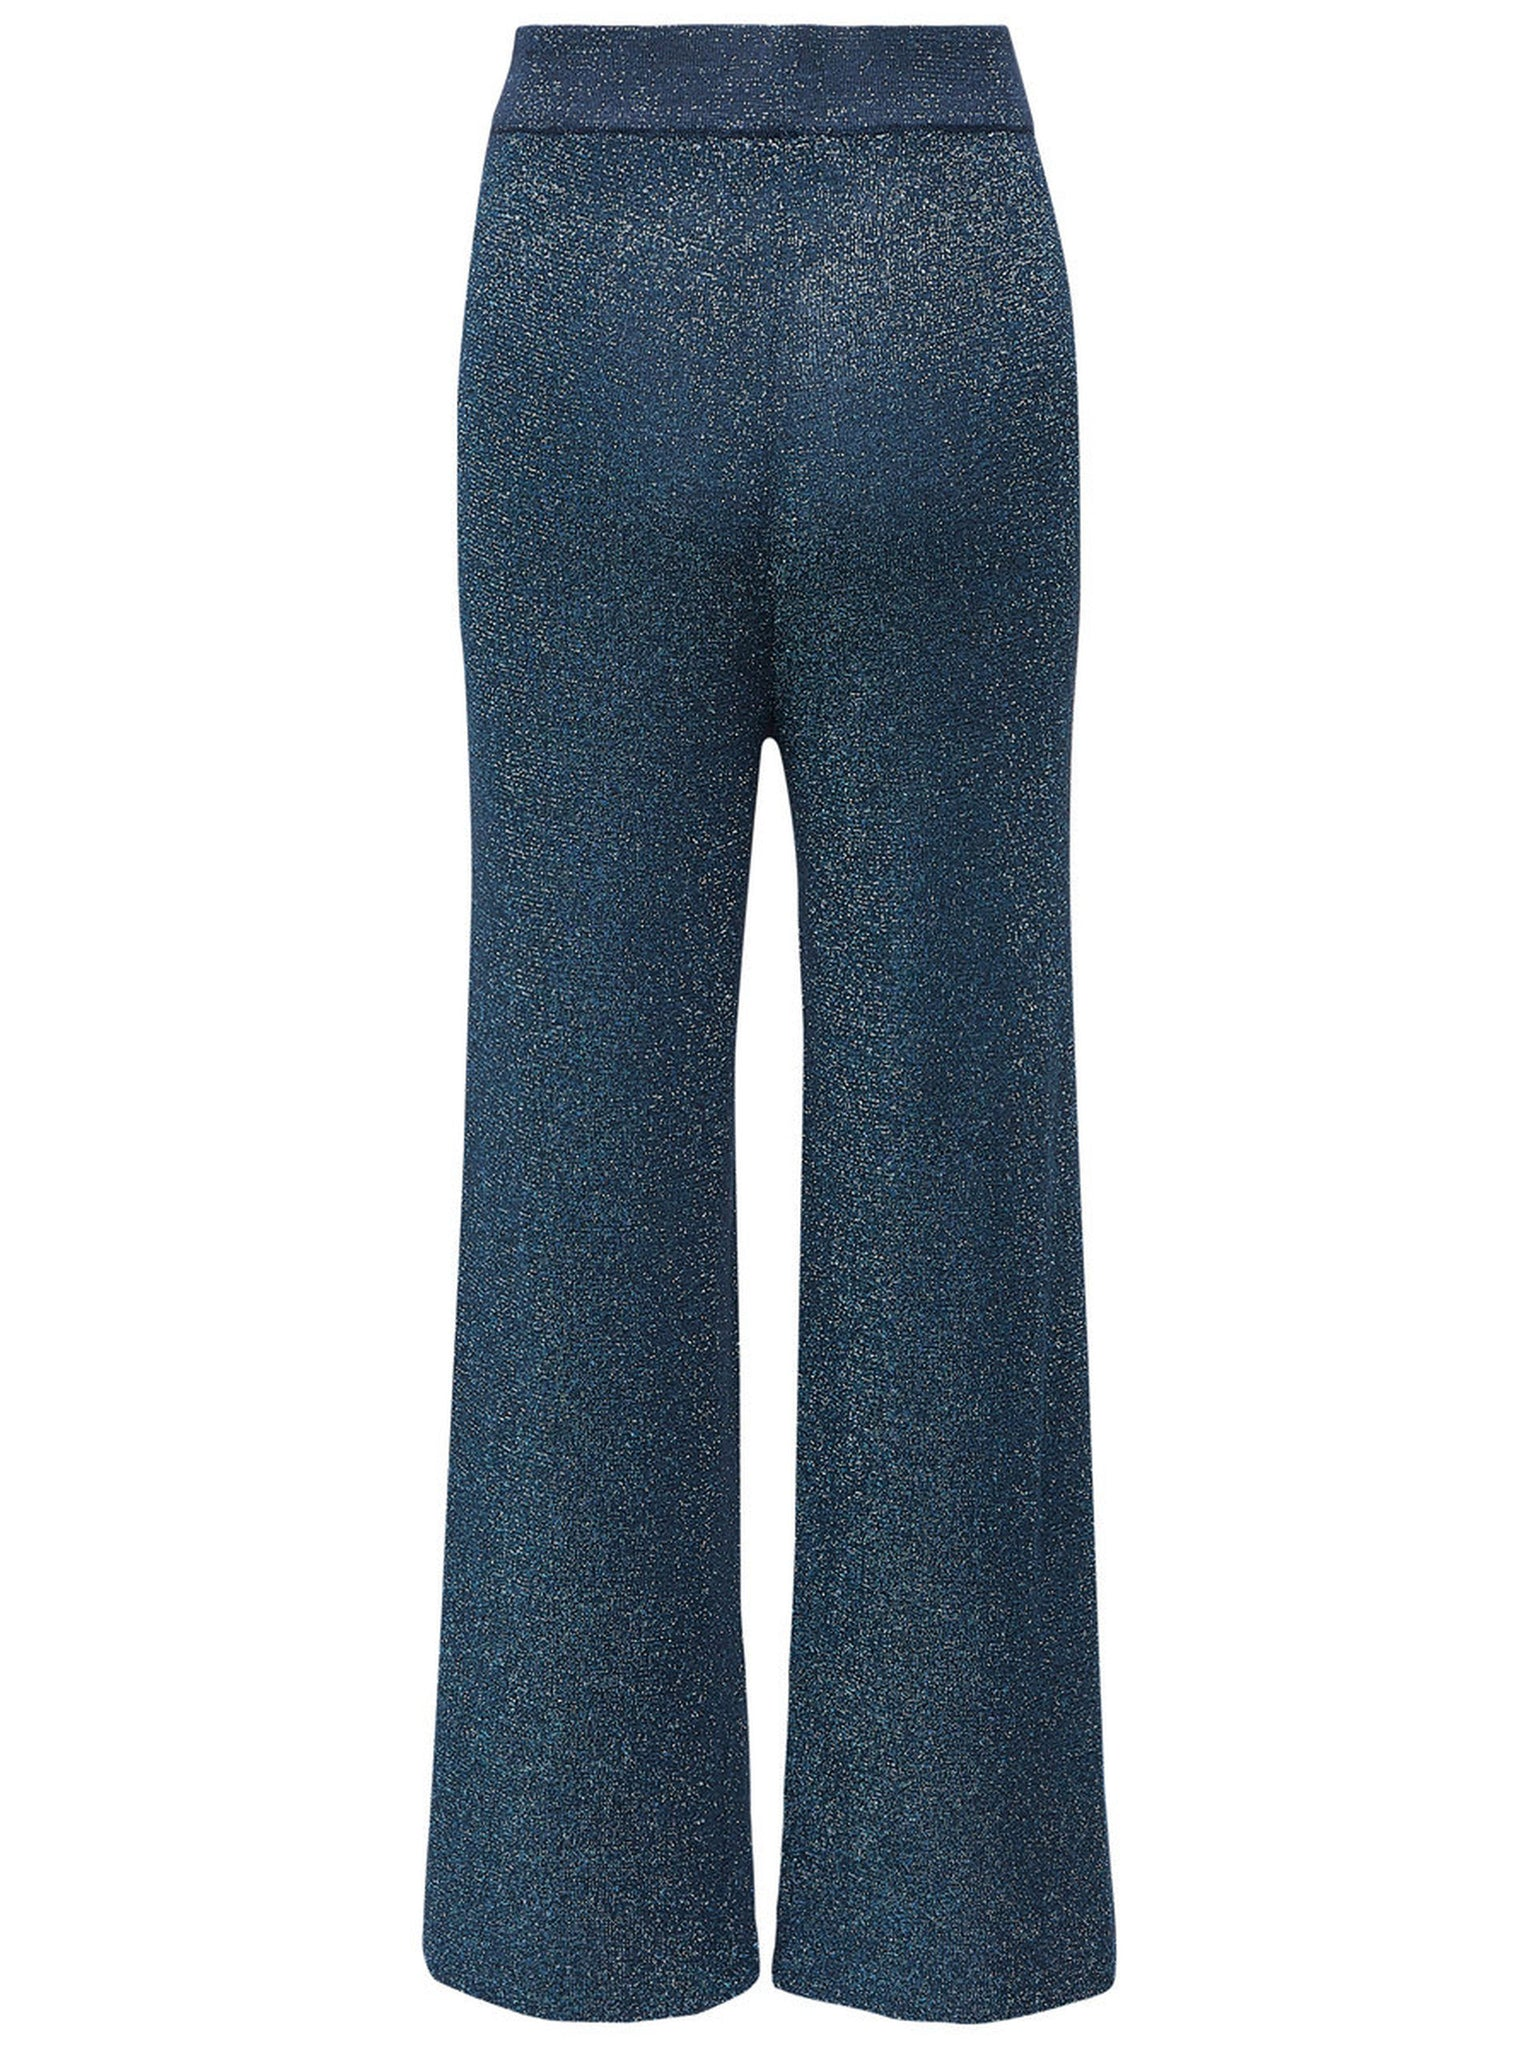 Glitter Trouser In Blue